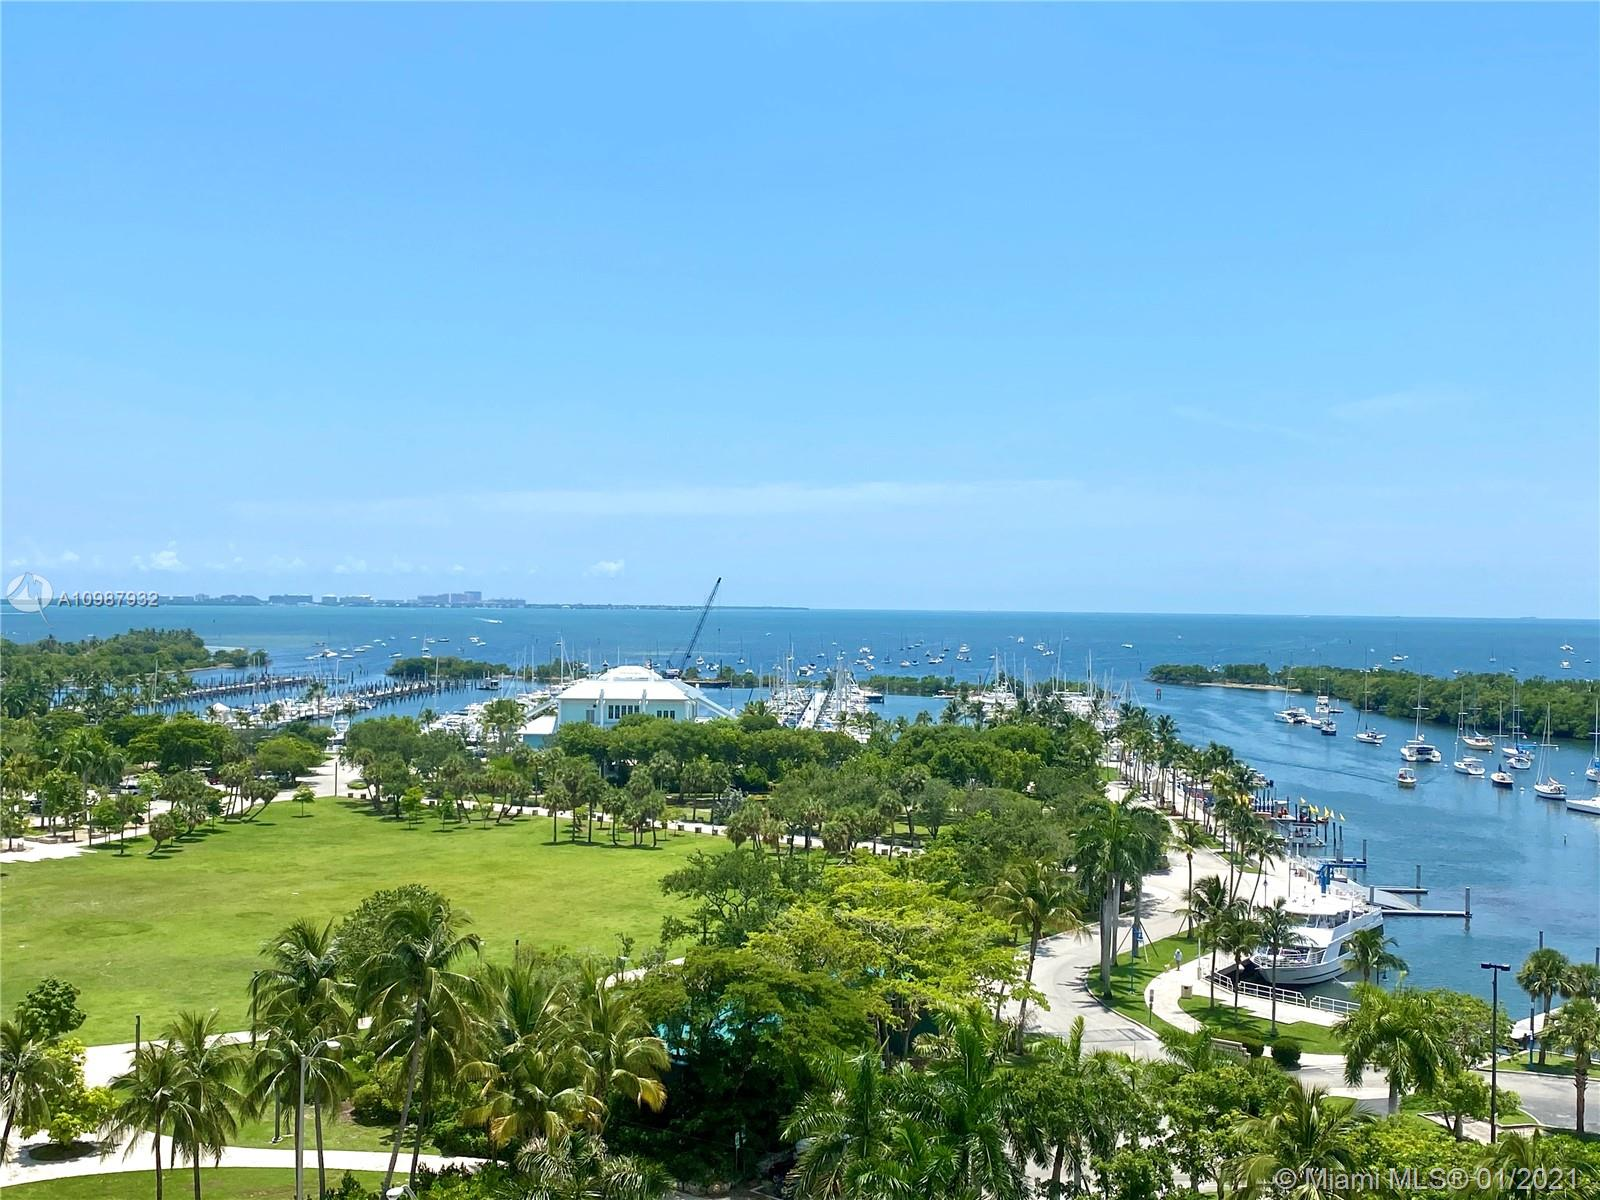 Overlooking the prized Biscayne Bay, this 3 bed condo welcomes you to the newly delivered One Park Grove. Great opportunity to purchase with tenant in place paying $14,000/month. Contact us for lease details and kick out clause. A private elevator foyer opens to 2,884 sqft with 12ft glass walls and a 393 sqft bayfront terrace highlighting the sensational views. 9B is finished with closets, drapes and light fixtures. It also boasts an open kitchen with upright wine fridge, marble countertops and high end appliances like Subzero and Wolf gas ranges, plus 2 water closets with Toto bidets in the main bath. Home to only 66 residences, One Park Grove features dedicated spa, sauna, fitness center, board room along with the 50,000 sqft of amenities of beautifully landscaped grounds.